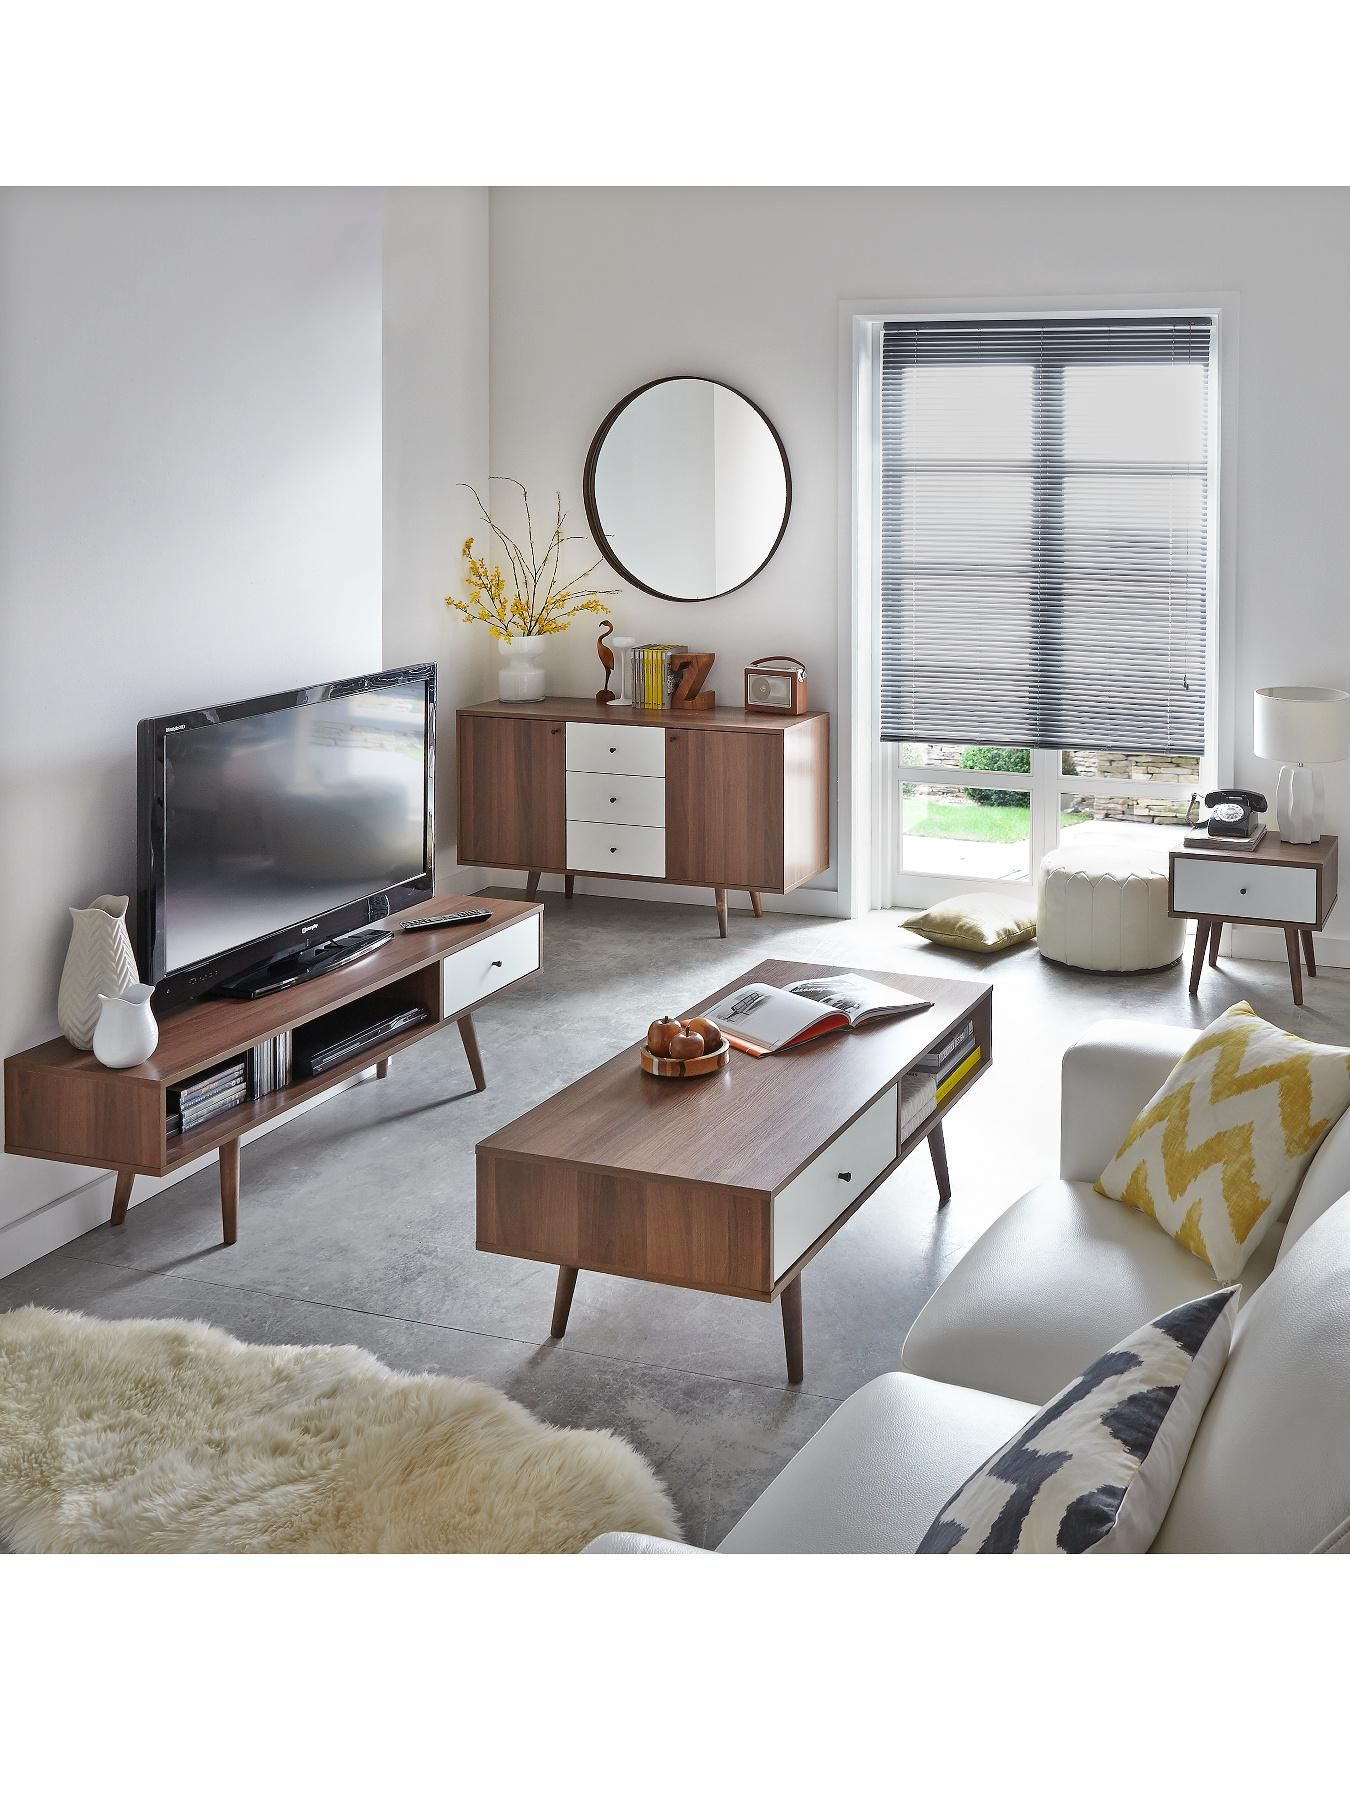 Monty 1 Drawer Retro Tv Unit In Walnut Effect And White Up To 60 Inch The Fabulous Fifties Have Made A Return Forefront Of Home Fashions This